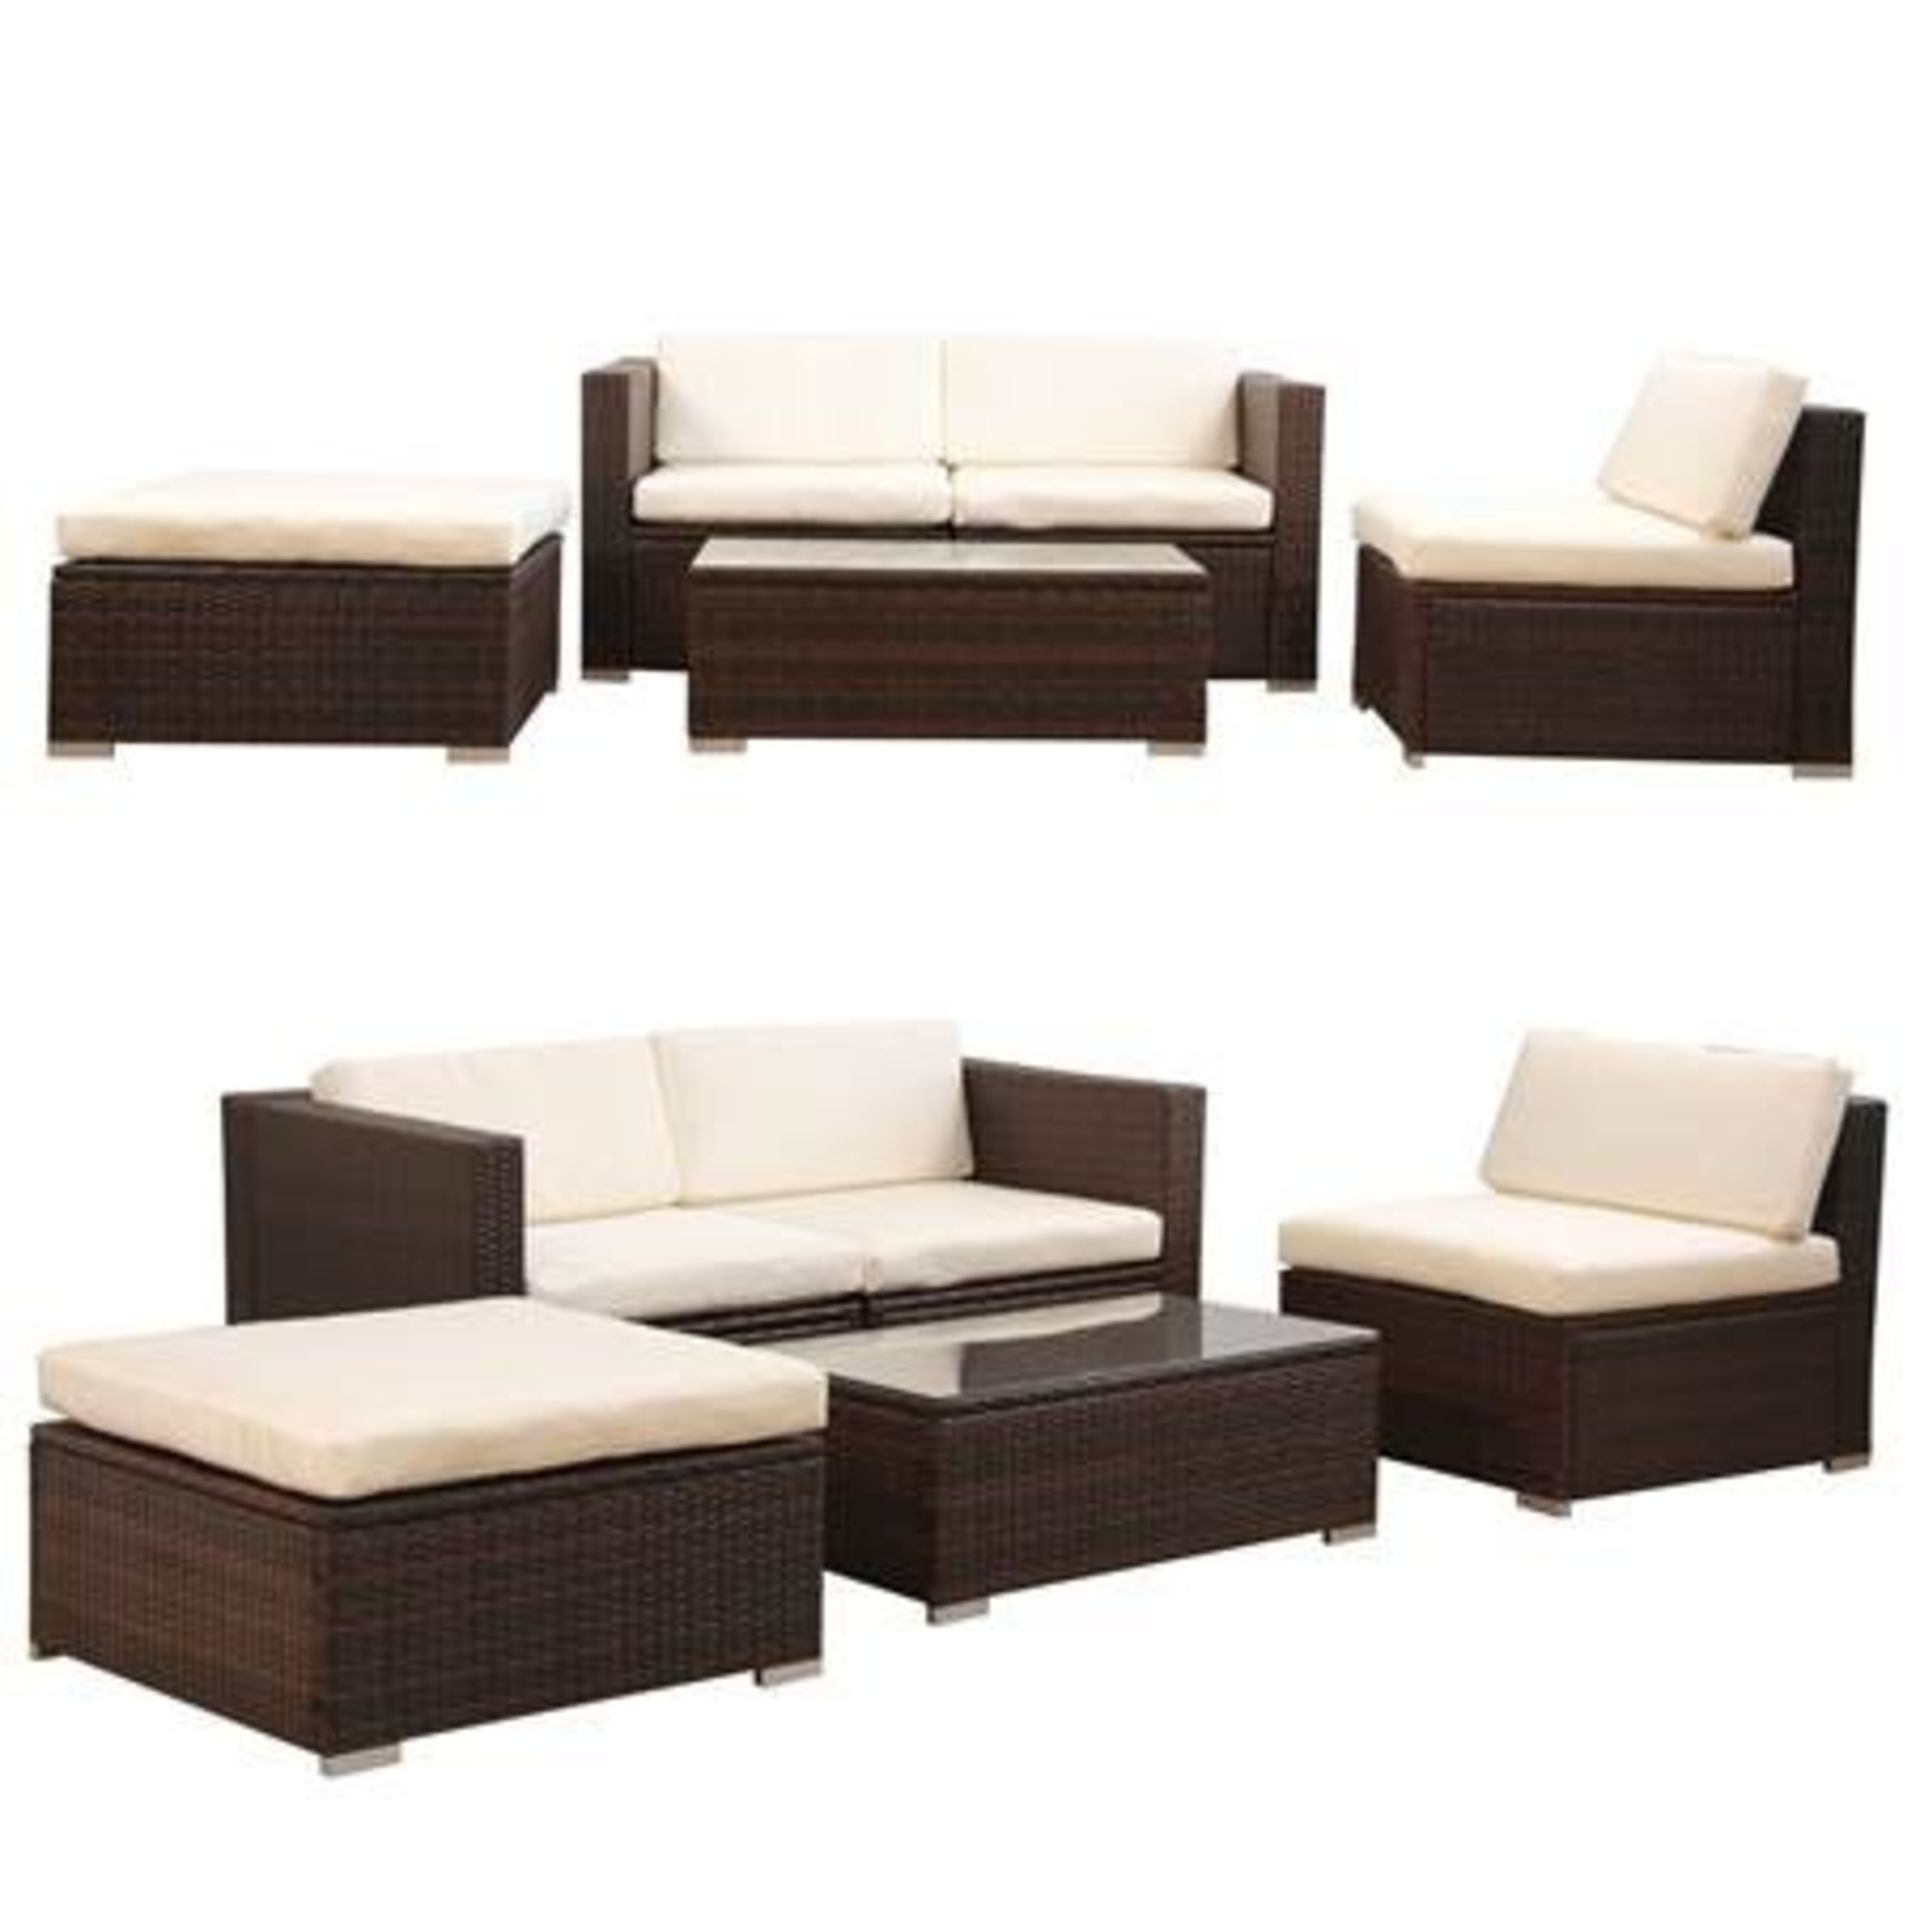 + VAT Brand New Chelsea Garden Company Modular Light Brown Rattan Corner Sofa Set With Ivory - Image 2 of 2